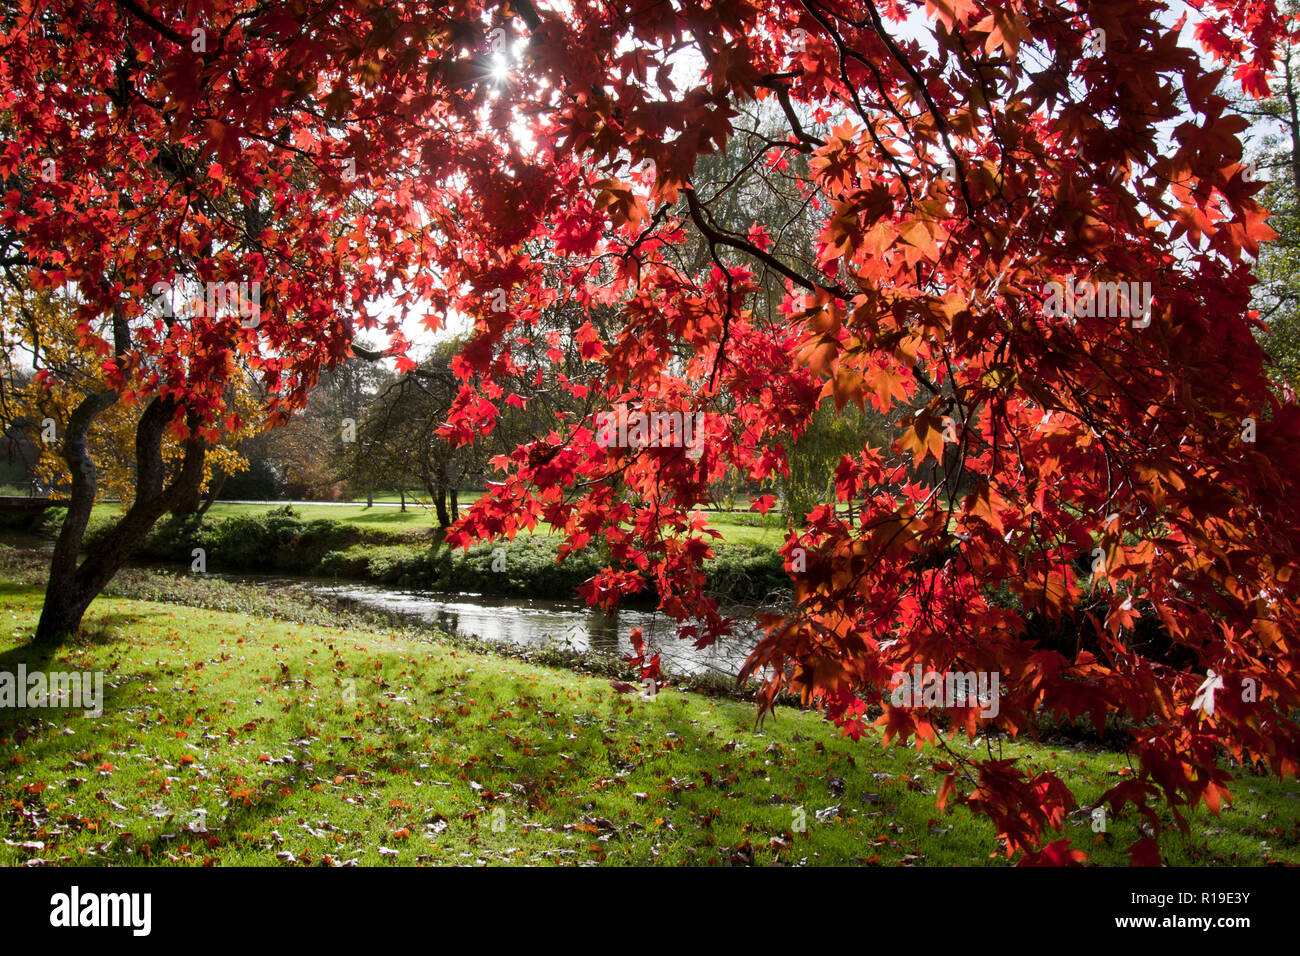 the vibrant colours of red maple tree (Acer rubrum) in autumn, Surrey, England Stock Photo